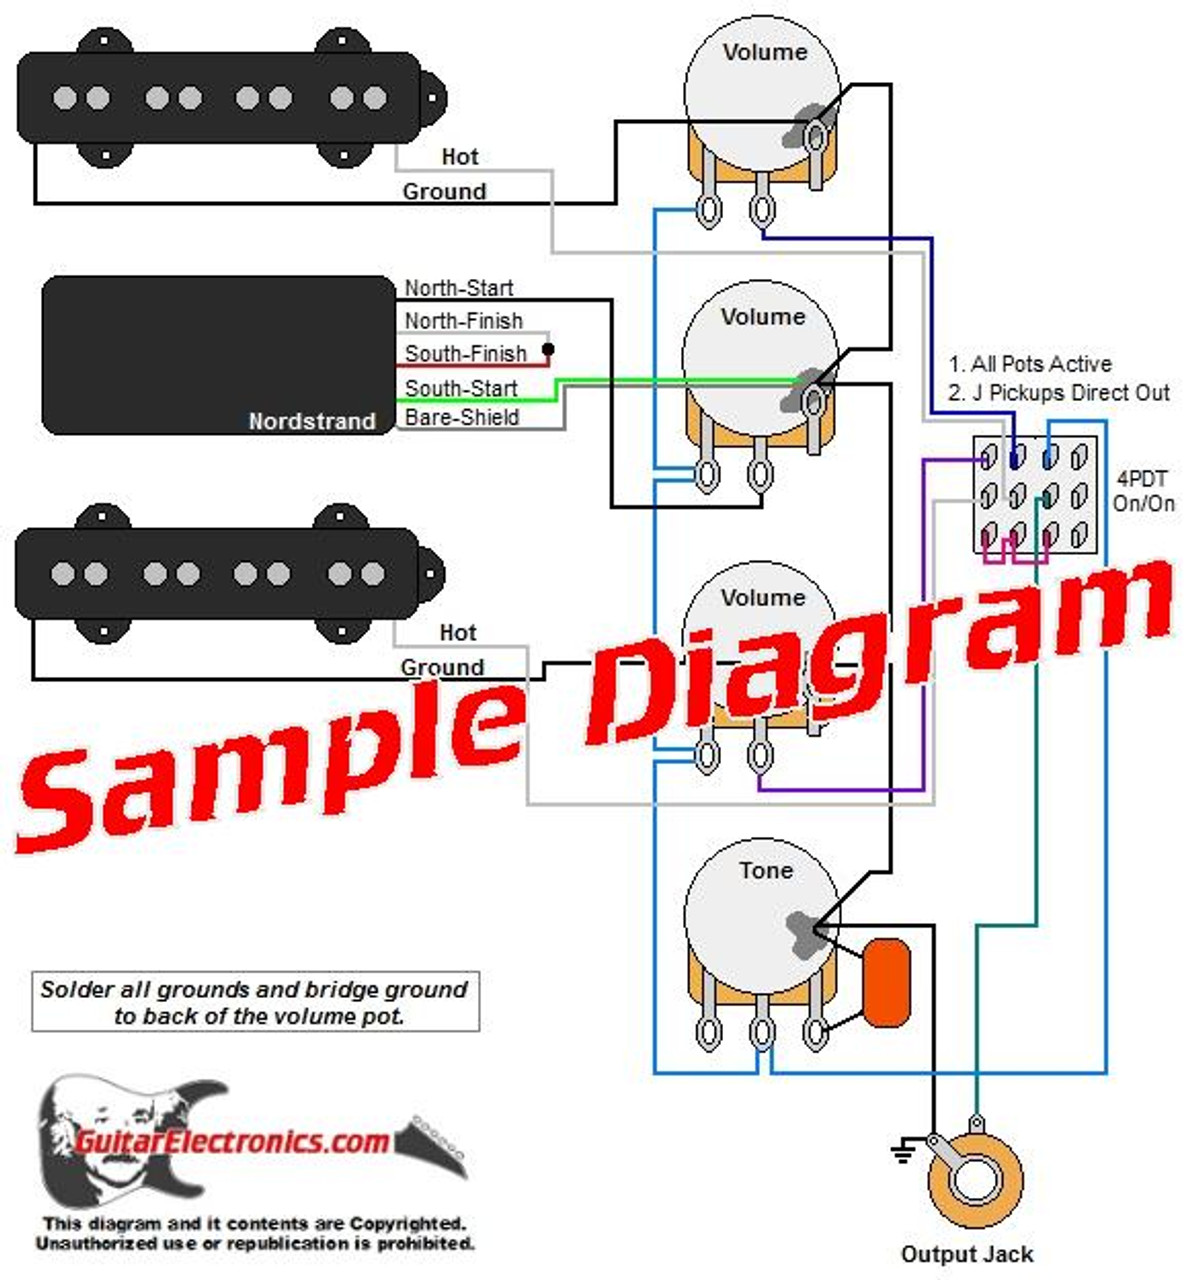 Guitar Electronics Wiring Diagram | Wiring Diagrams on electrical schematic drawings, building electrical single line diagram, electrical schematic power supply, electrical schematic lighting, electrical safety test equipment, electrical logic diagram, electrical schematic transformer, electrical diagrams for houses, electrical block diagram, electrical schematic circuit diagram, electrical panel schematic, electrical wiring for automobiles, electrical wiring signs, electrical motor schematic diagram, electrical loop diagram, electrical theory for beginners, electrical engineering projects for beginners, connection diagram, electrical schematic legend, electrical wiring circuits,